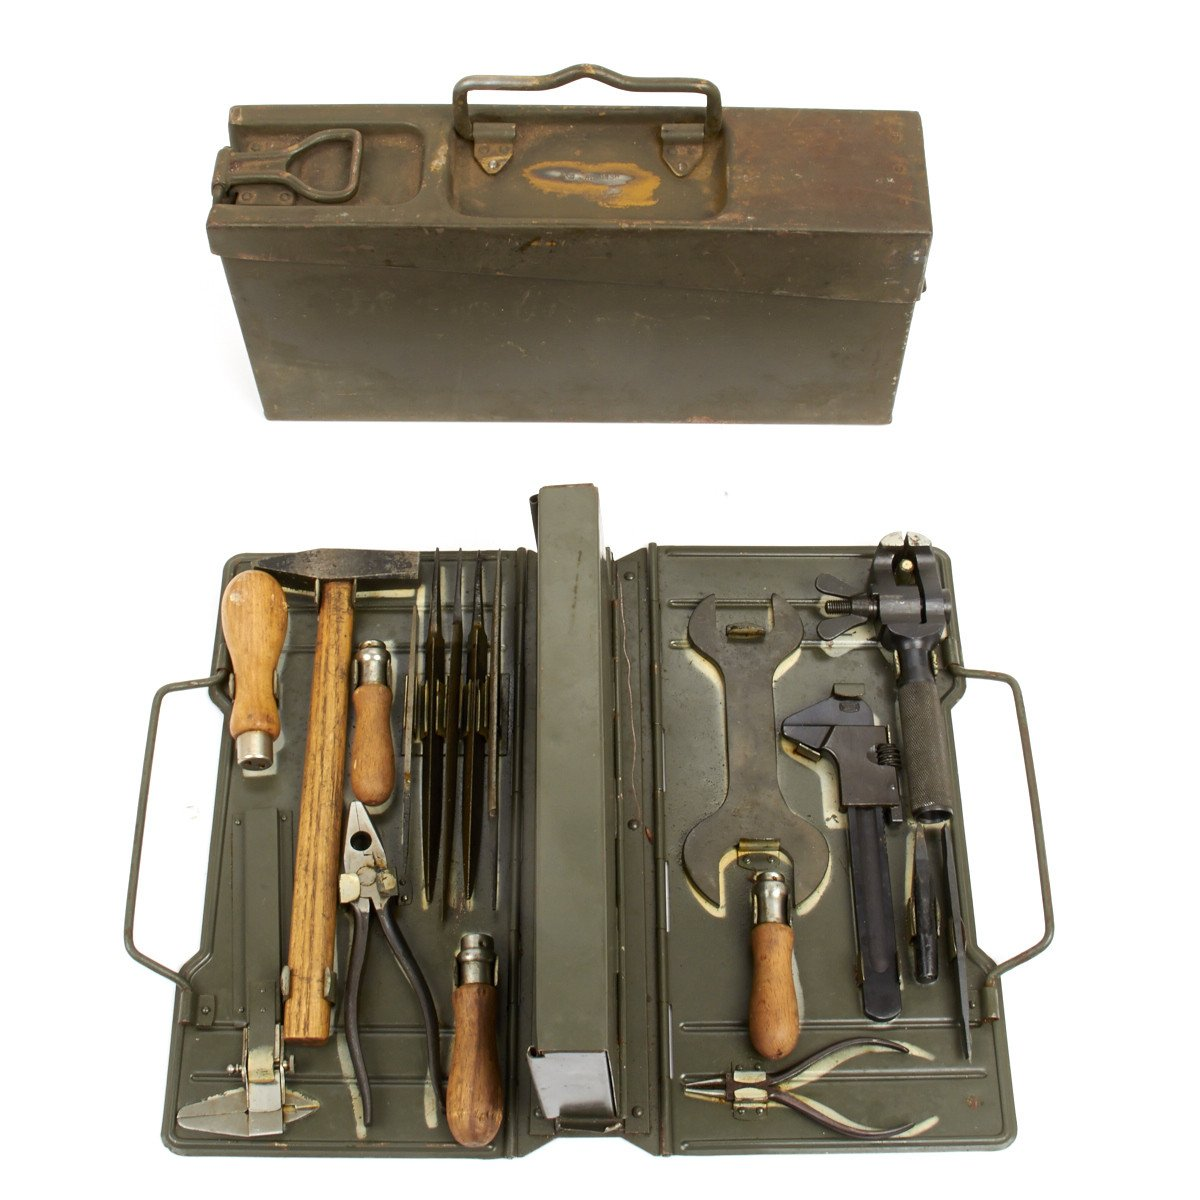 Original German WWII MG34/42 Waffenmeister Field Tool Kit Marked BSW 1938 -  Complete – International Military Antiques